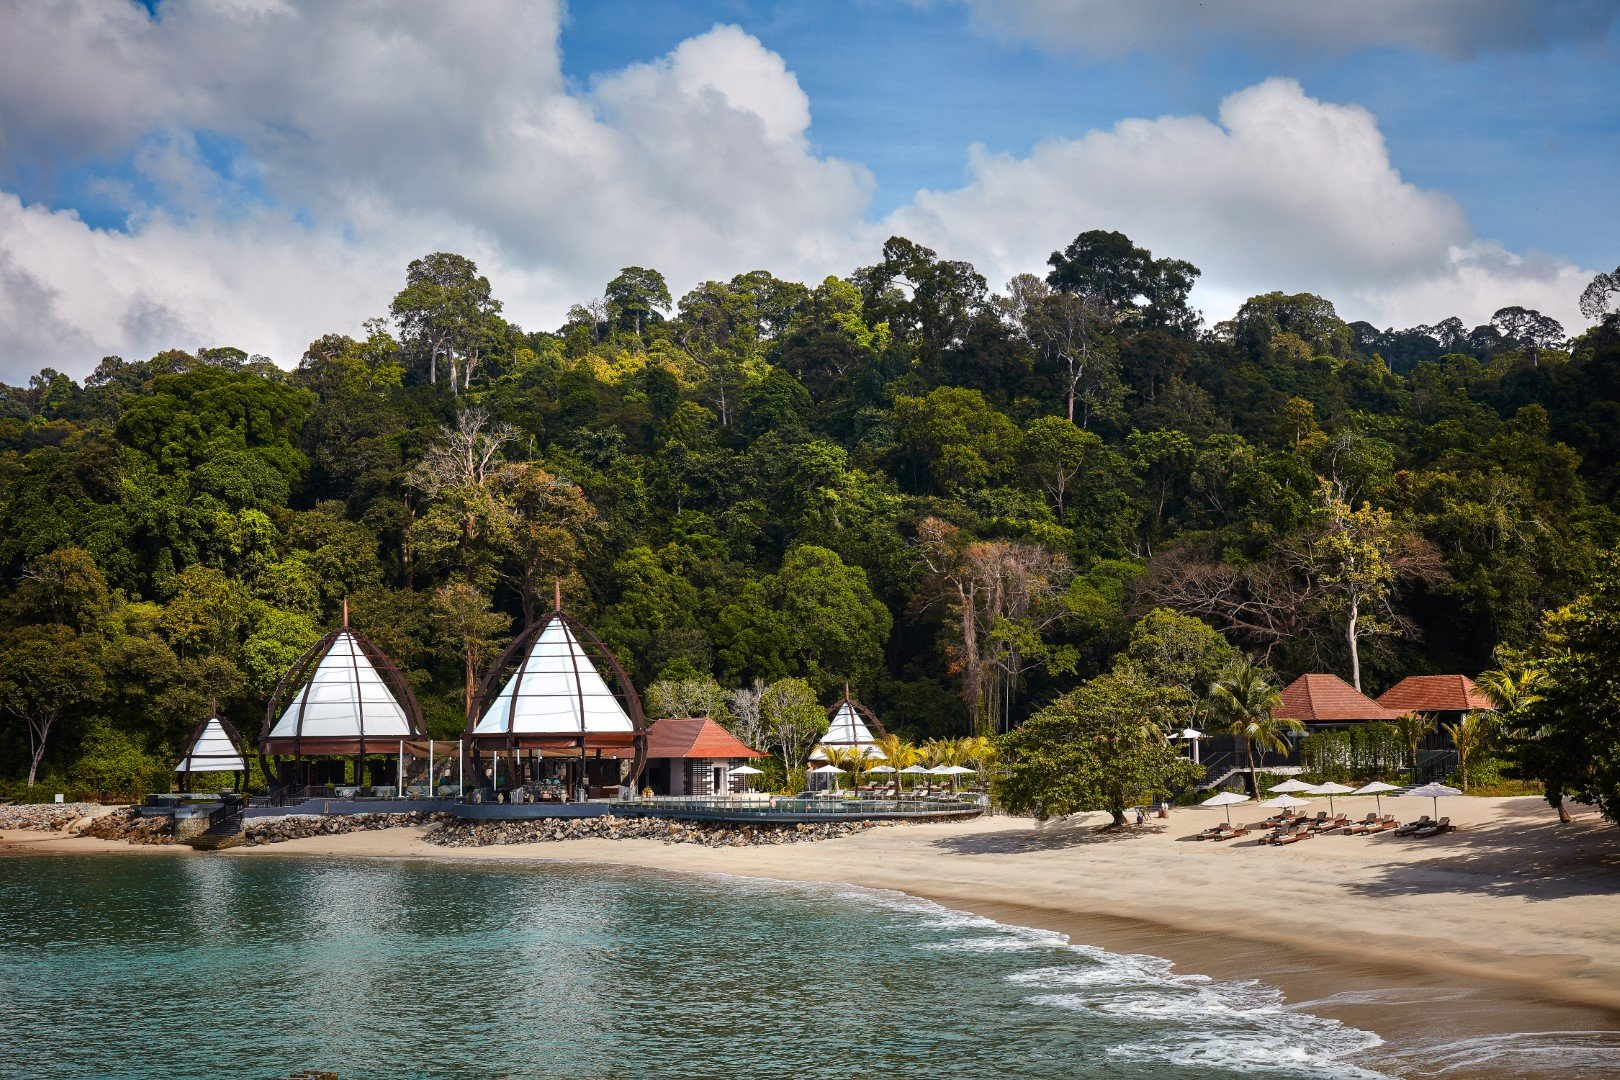 Indulge in True Beachfront Luxury at the Ritz-Carlton Langkawi